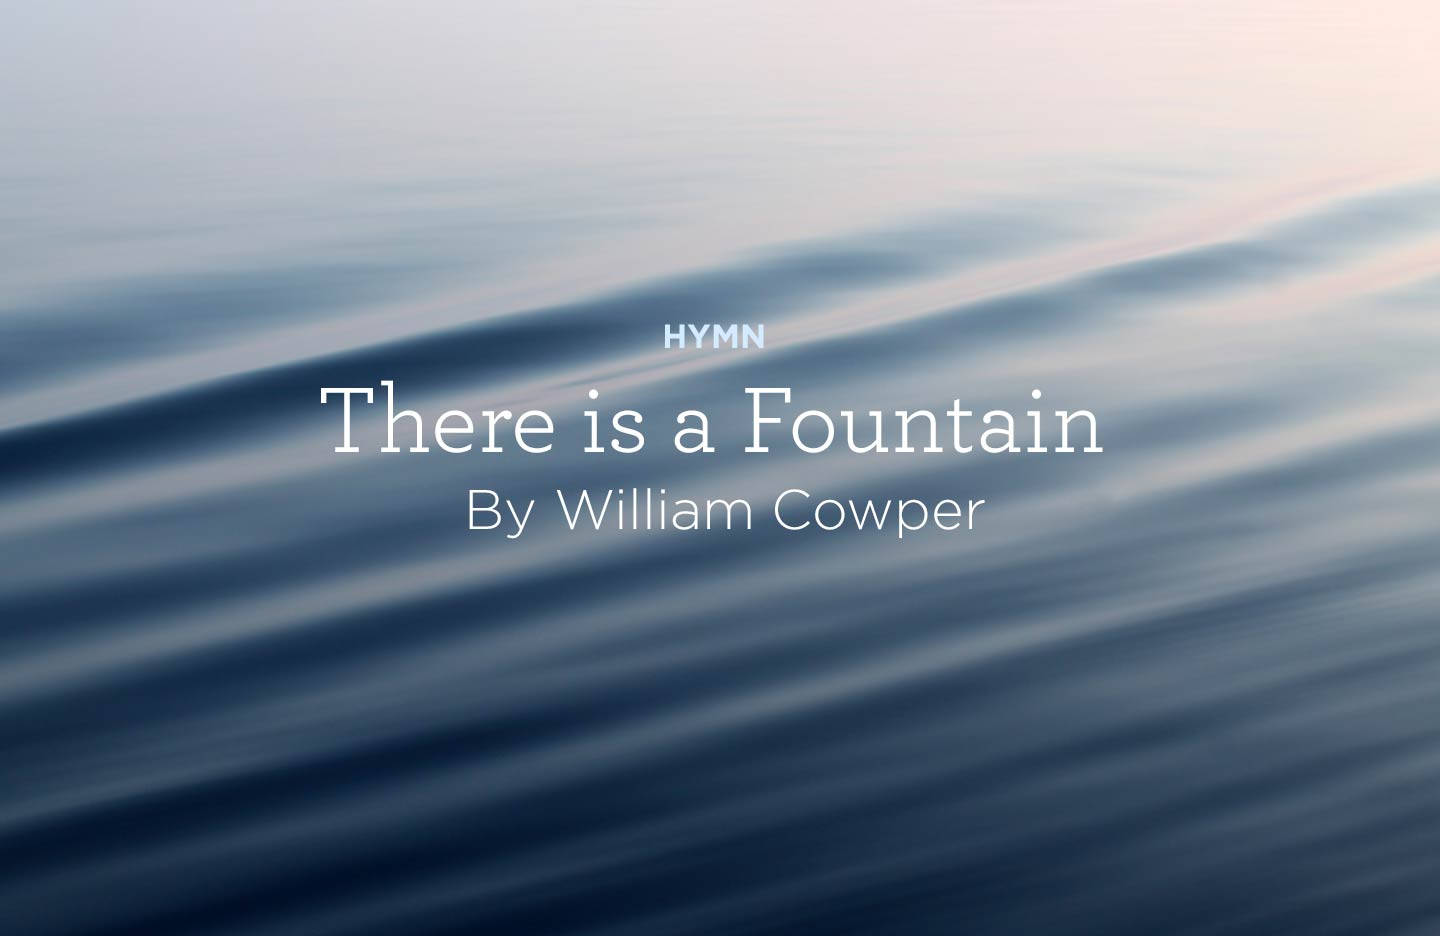 There-is-a-Fountain.jpg